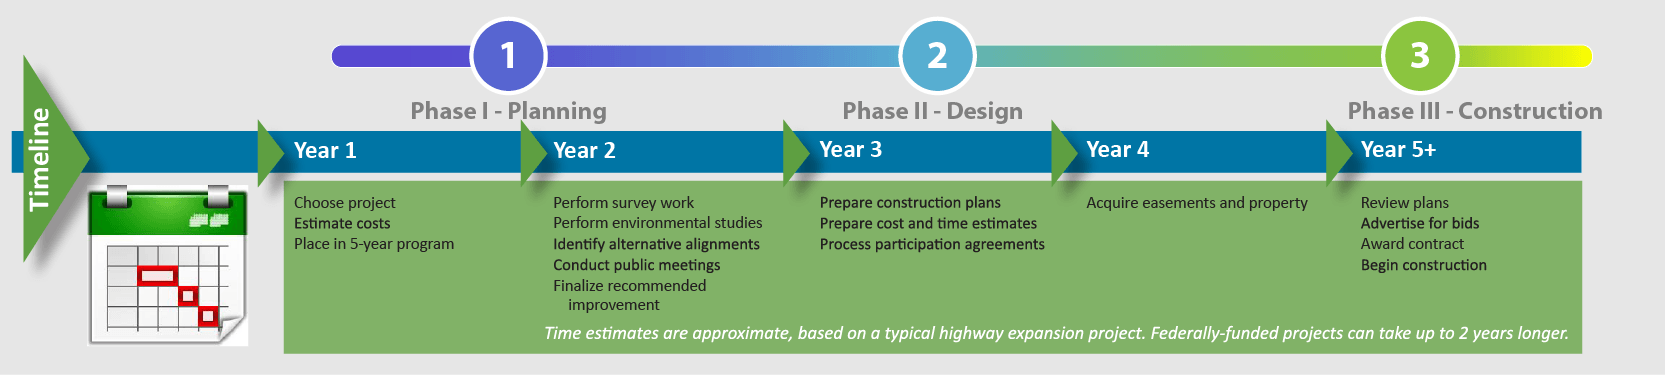 Project phases timeline